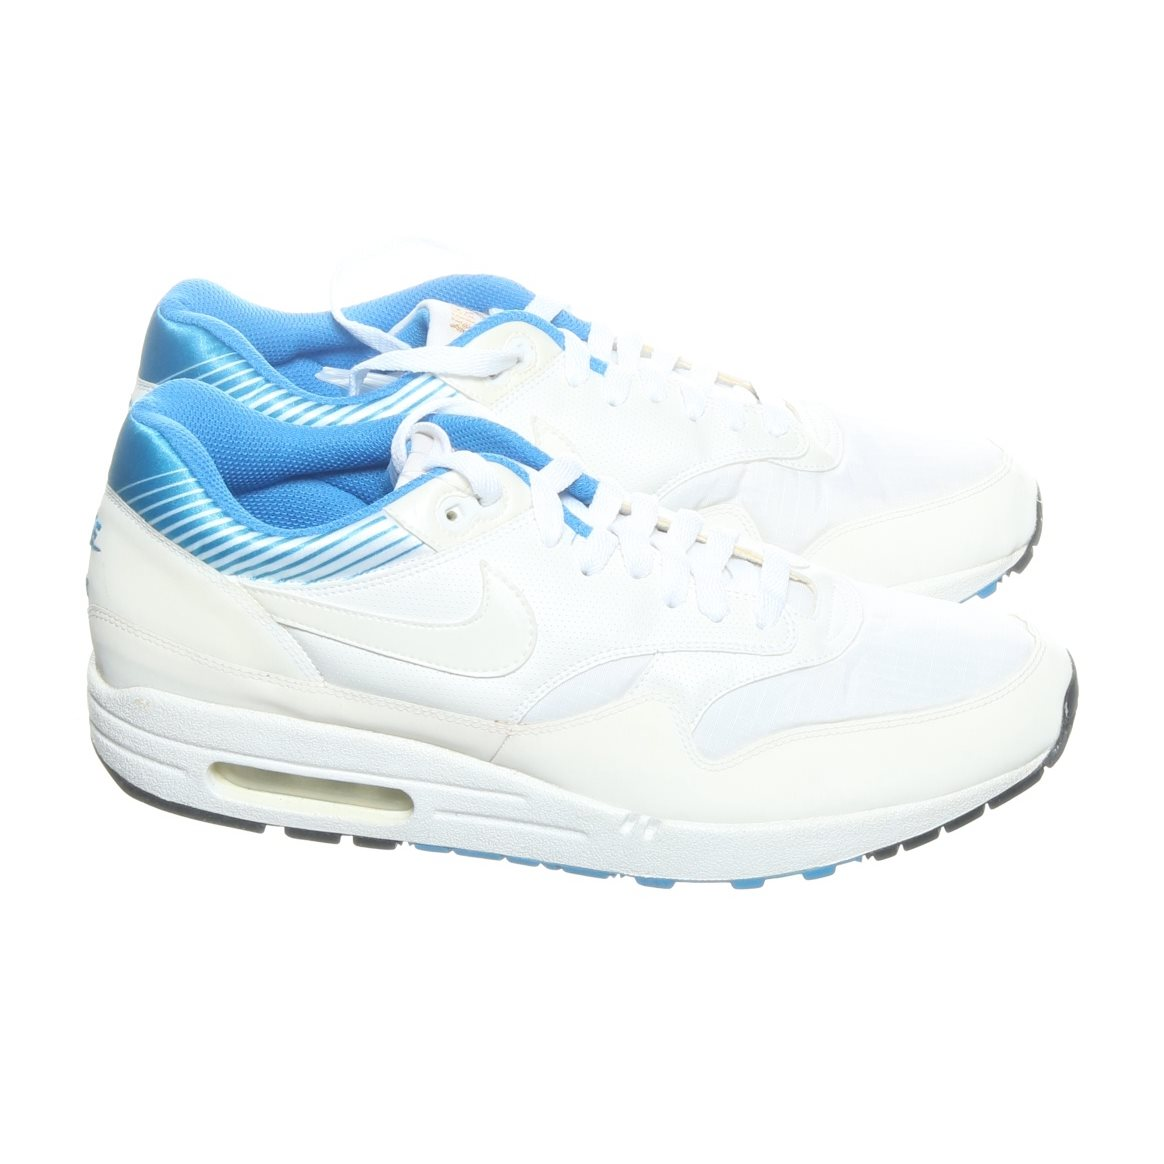 finest selection 0ef3f 585ad Nike, Sneakers, Strl  42,5, Air Max 1 Premium SP,